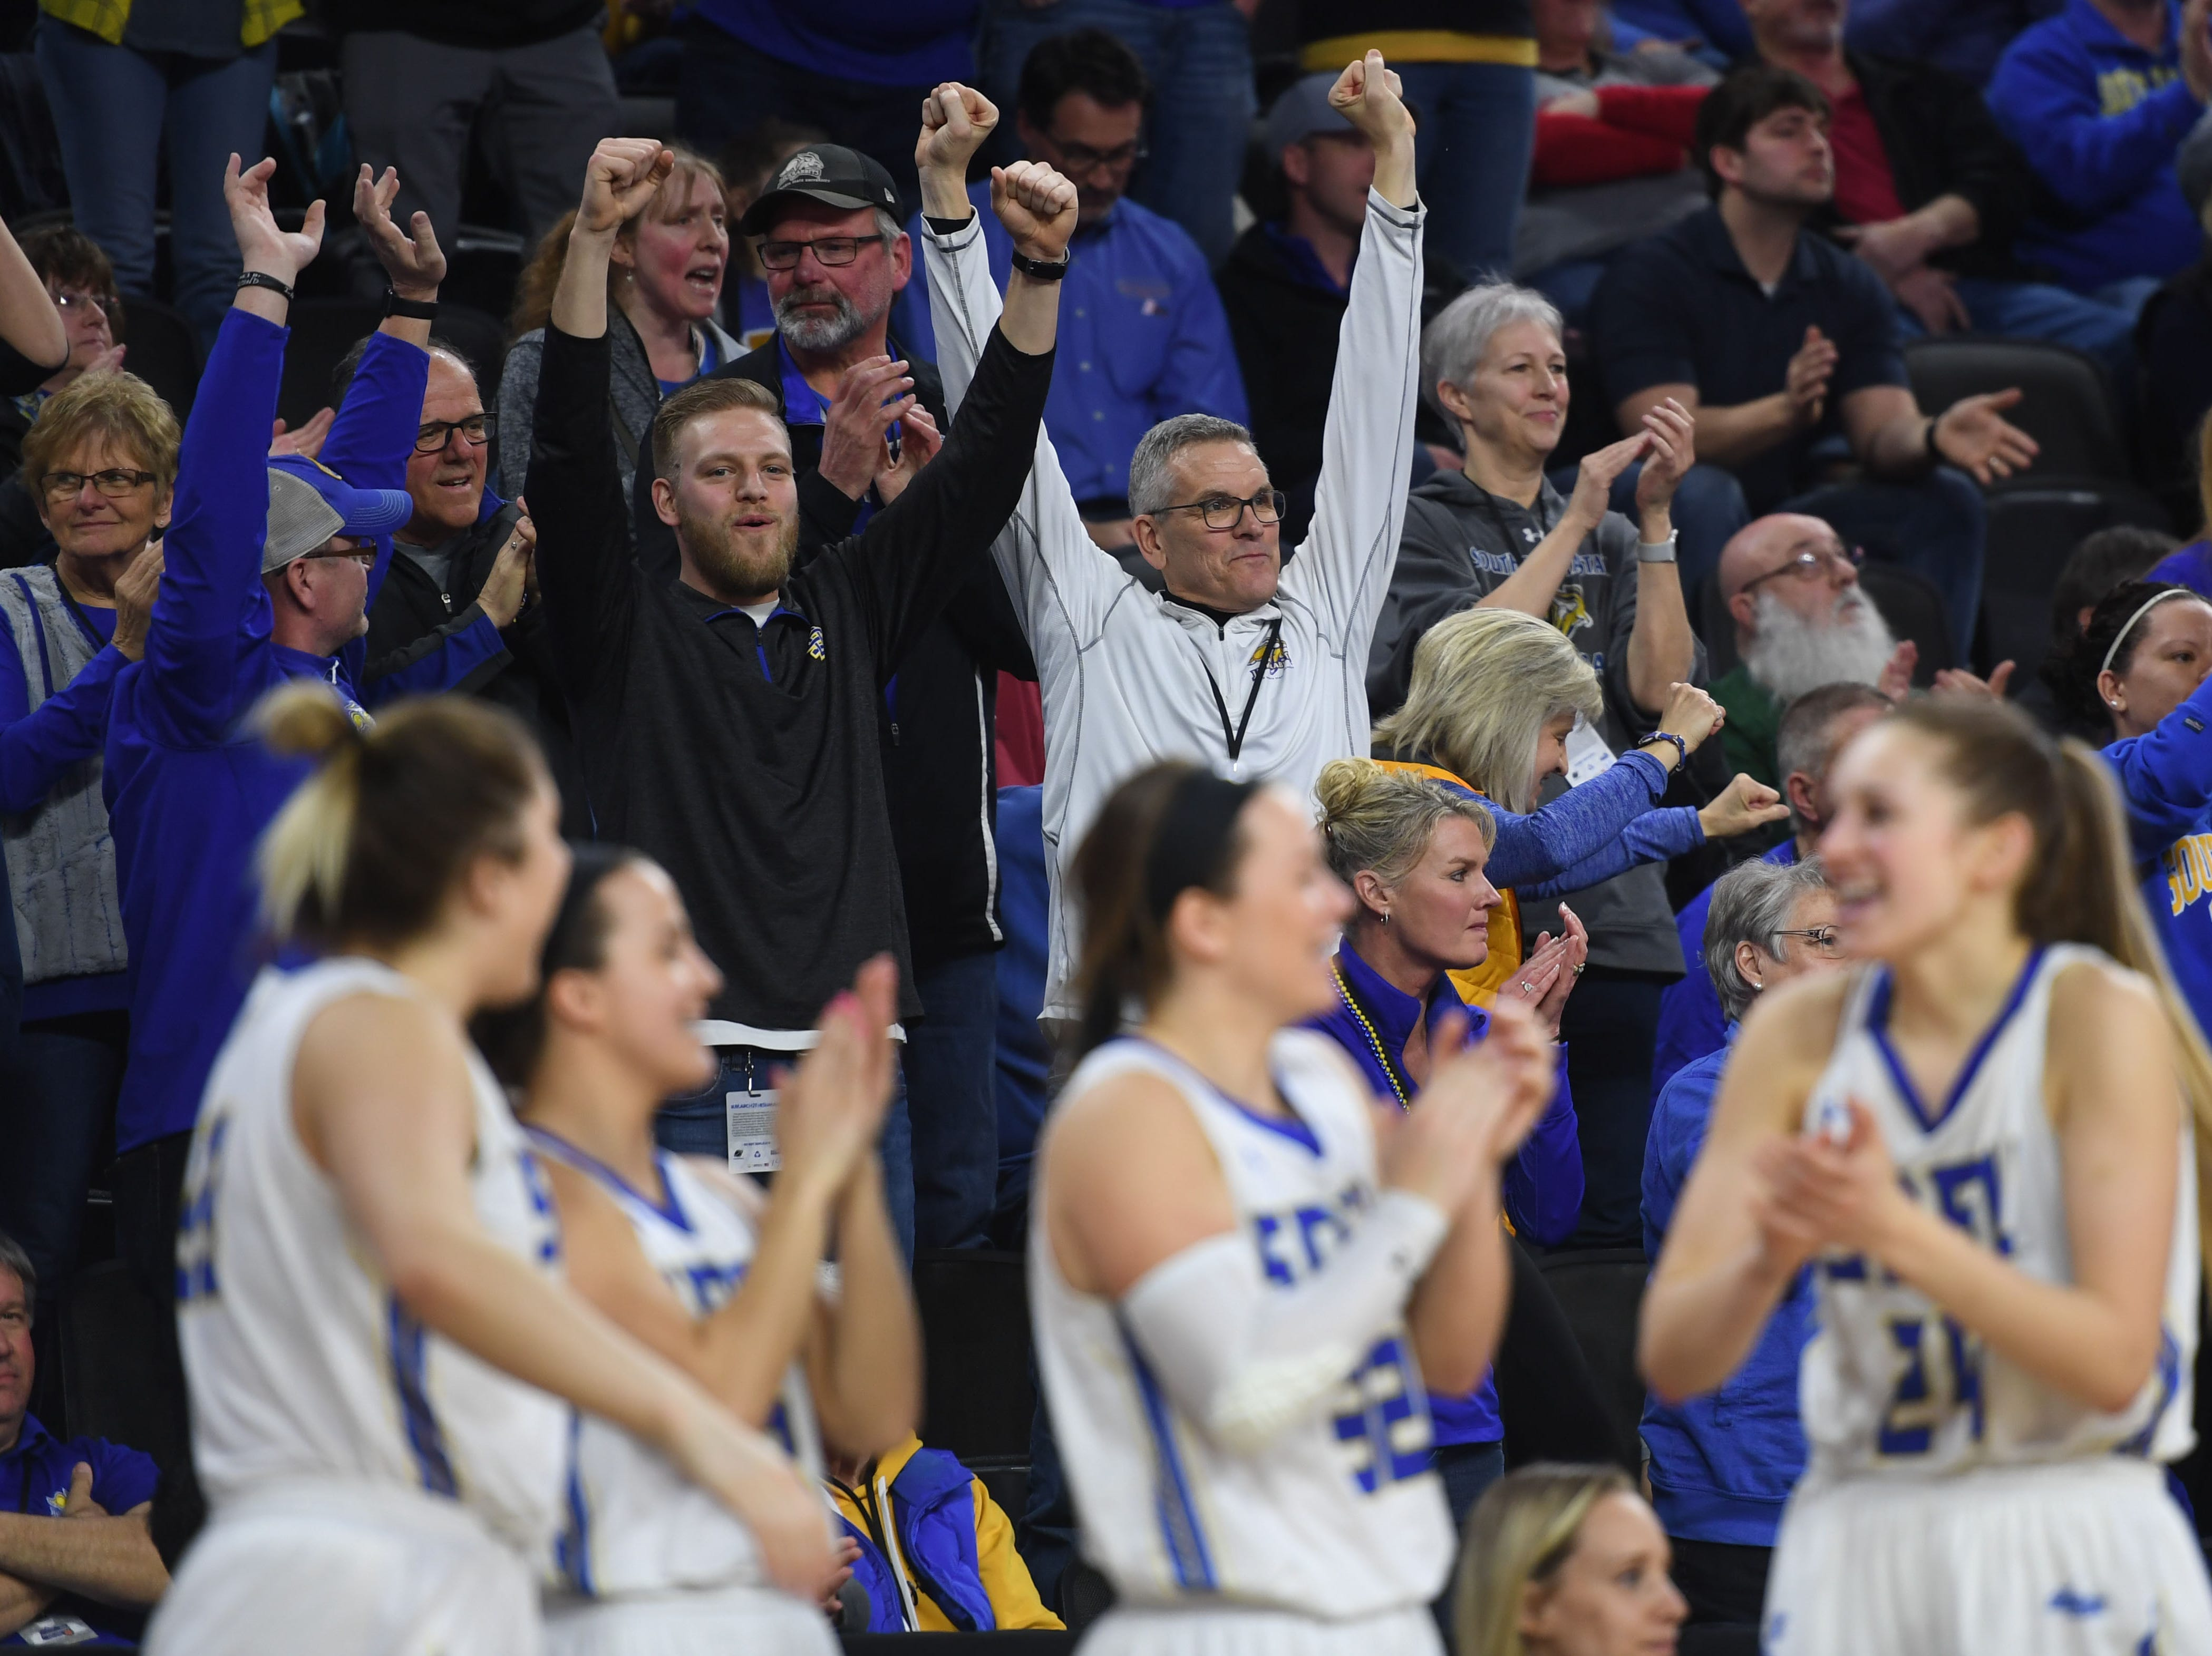 SDSU fans begin to cheer in the final seconds of the game against USD Tuesday, March 12, in the Summit League women's championship at the Denny Sanford Premier Center in Sioux Falls.